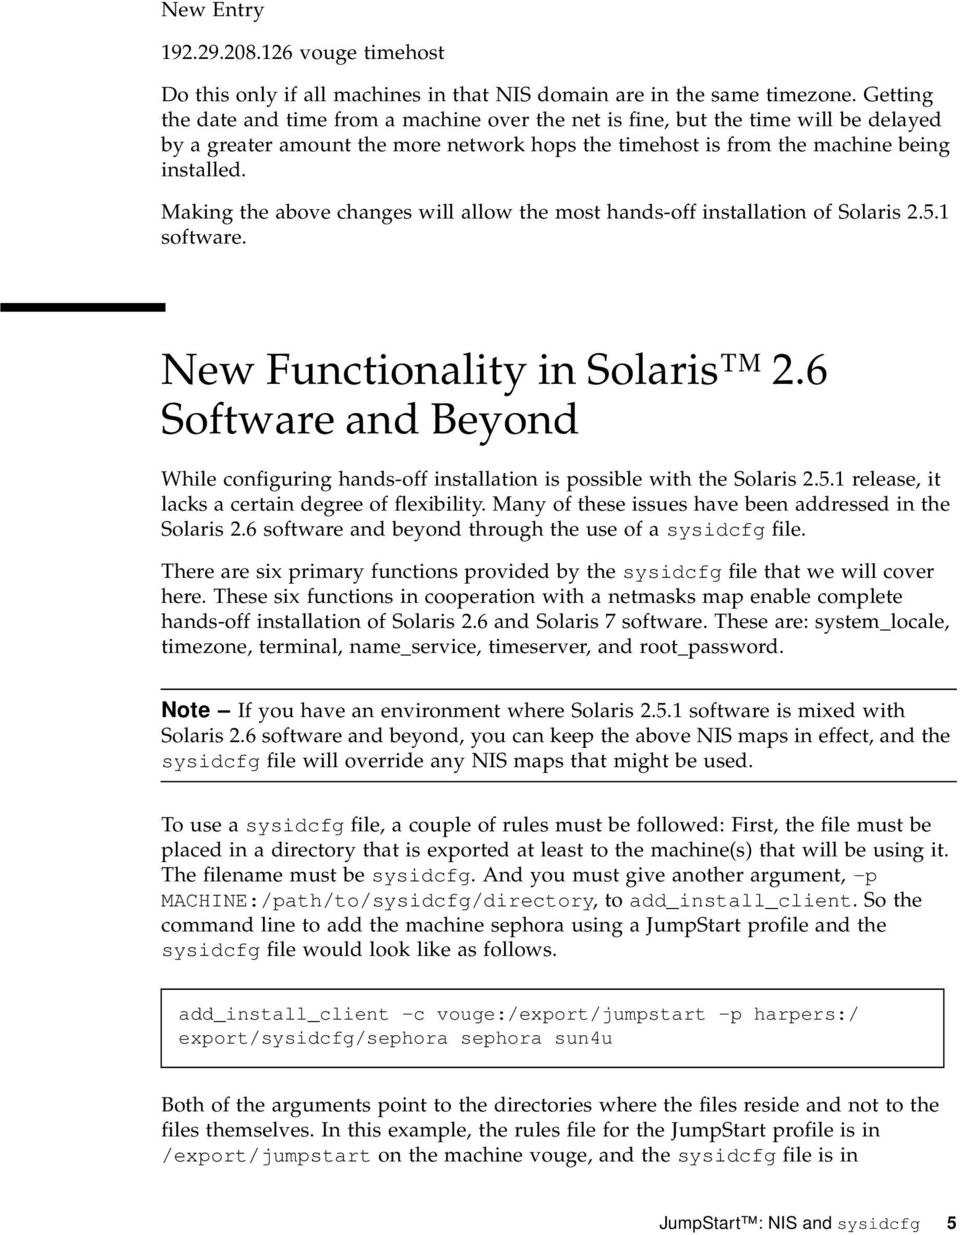 Making the above changes will allow the most hands-off installation of Solaris 2.5.1 software. New Functionality in Solaris 2.